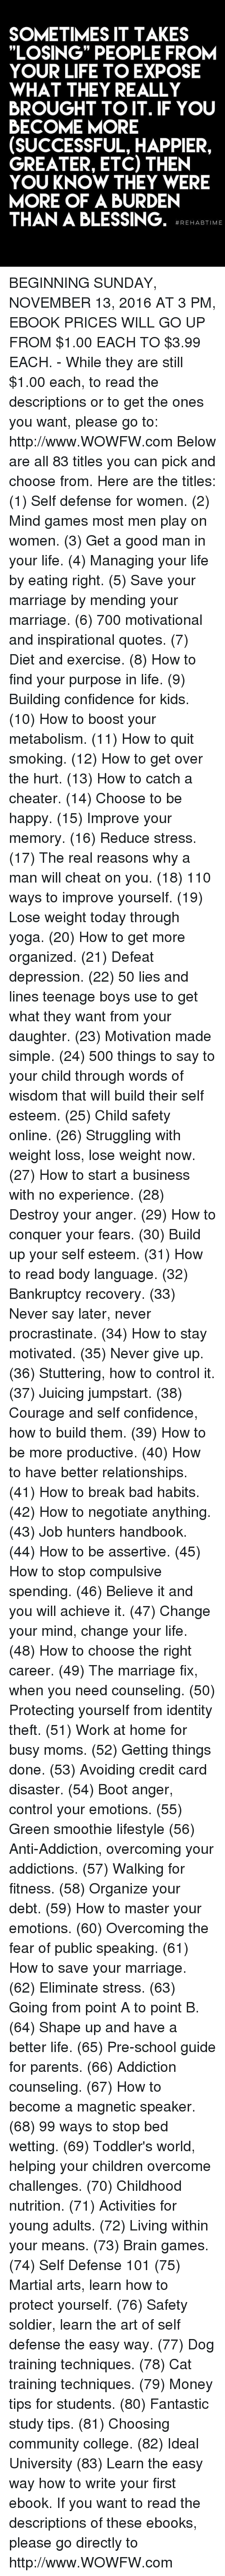 "Procrastination: SOMETIMES IT TAKES  ""LOSING"" PEOPLE FROM  YOUR LIFE TO EXPOSE  WHAT THEY REALLY  BROUGHT TO IT. IF YOU  BECOME MORE  (SUCCESSFUL, HAPPIER,  GREATER, ETC) THEN  YOU KNOW THEY WERE  MORE OF A BURDEN  THAN A BLESSING.  REHAB TIME BEGINNING SUNDAY, NOVEMBER 13, 2016 AT 3 PM, EBOOK PRICES WILL GO UP FROM $1.00 EACH TO $3.99 EACH. - While they are still $1.00 each, to read the descriptions or to get the ones you want, please go to: http://www.WOWFW.com  Below are all 83 titles you can pick and choose from.   Here are the titles: (1) Self defense for women. (2) Mind games most men play on women. (3) Get a good man in your life. (4) Managing your life by eating right. (5) Save your marriage by mending your marriage. (6) 700 motivational and inspirational quotes. (7) Diet and exercise. (8) How to find your purpose in life. (9) Building confidence for kids. (10) How to boost your metabolism. (11) How to quit smoking. (12) How to get over the hurt. (13) How to catch a cheater. (14) Choose to be happy. (15) Improve your memory. (16) Reduce stress. (17) The real reasons why a man will cheat on you. (18) 110 ways to improve yourself. (19) Lose weight today through yoga. (20) How to get more organized. (21) Defeat depression. (22) 50 lies and lines teenage boys use to get what they want from your daughter. (23) Motivation made simple. (24) 500 things to say to your child through words of wisdom that will build their self esteem.   (25) Child safety online. (26) Struggling with weight loss, lose weight now. (27) How to start a business with no experience. (28) Destroy your anger. (29) How to conquer your fears. (30) Build up your self esteem. (31) How to read body language. (32) Bankruptcy recovery. (33) Never say later, never procrastinate. (34) How to stay motivated. (35) Never give up. (36) Stuttering, how to control it. (37) Juicing jumpstart. (38) Courage and self confidence, how to build them. (39) How to be more productive. (40) How to have better relationships. (41) How to break bad habits. (42) How to negotiate anything. (43) Job hunters handbook. (44) How to be assertive. (45) How to stop compulsive spending. (46) Believe it and you will achieve it. (47) Change your mind, change your life. (48) How to choose the right career. (49) The marriage fix, when you need counseling. (50) Protecting yourself from identity theft. (51) Work at home for busy moms. (52) Getting things done. (53) Avoiding credit card disaster.   (54) Boot anger, control your emotions. (55) Green smoothie lifestyle (56) Anti-Addiction, overcoming your addictions. (57) Walking for fitness. (58) Organize your debt. (59) How to master your emotions. (60) Overcoming the fear of public speaking. (61) How to save your marriage. (62) Eliminate stress. (63) Going from point A to point B. (64) Shape up and have a better life. (65) Pre-school guide for parents. (66) Addiction counseling. (67) How to become a magnetic speaker. (68) 99 ways to stop bed wetting. (69) Toddler's world, helping your children overcome challenges. (70) Childhood nutrition. (71) Activities for young adults. (72) Living within your means. (73) Brain games. (74) Self Defense 101 (75) Martial arts, learn how to protect yourself. (76) Safety soldier, learn the art of self defense the easy way. (77) Dog training techniques. (78) Cat training techniques. (79) Money tips for students. (80) Fantastic study tips. (81) Choosing community college. (82) Ideal University (83) Learn the easy way how to write your first ebook.  If you want to read the descriptions of these ebooks, please go directly to http://www.WOWFW.com"